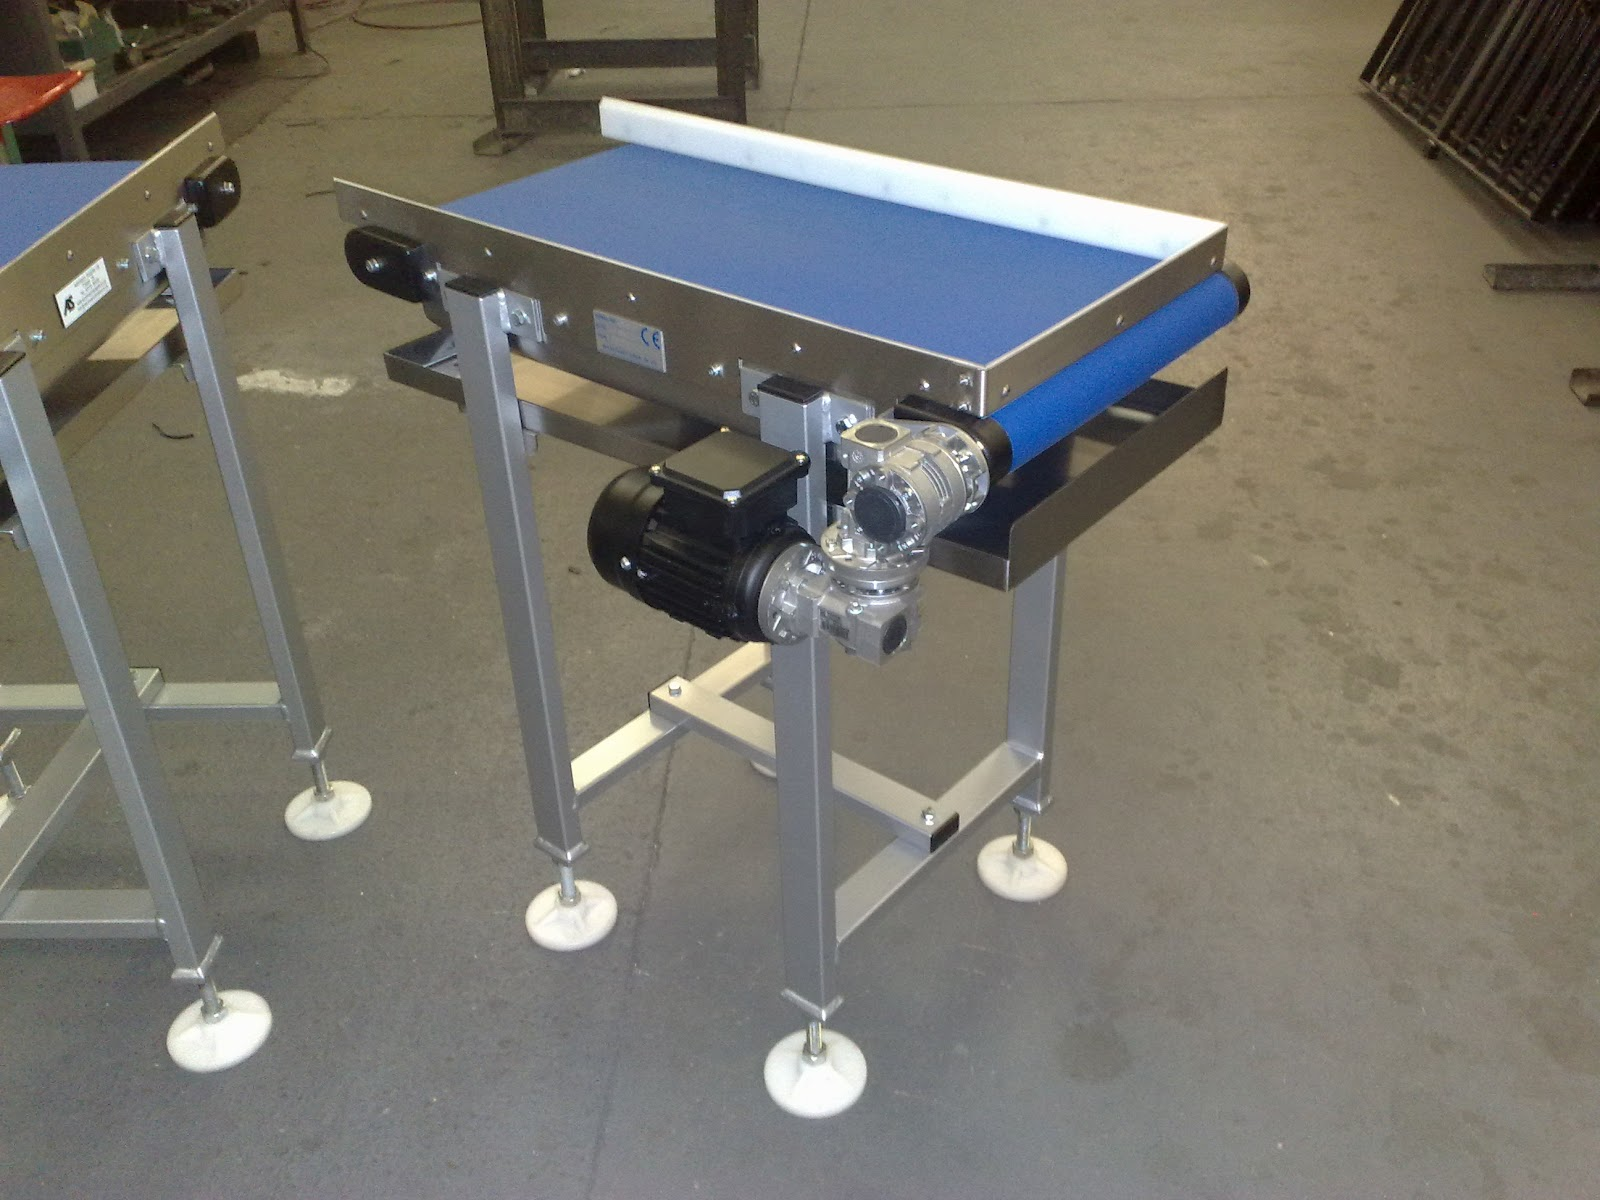 Conveyor belt special design with drip tray conveyor Motorized conveyor belt